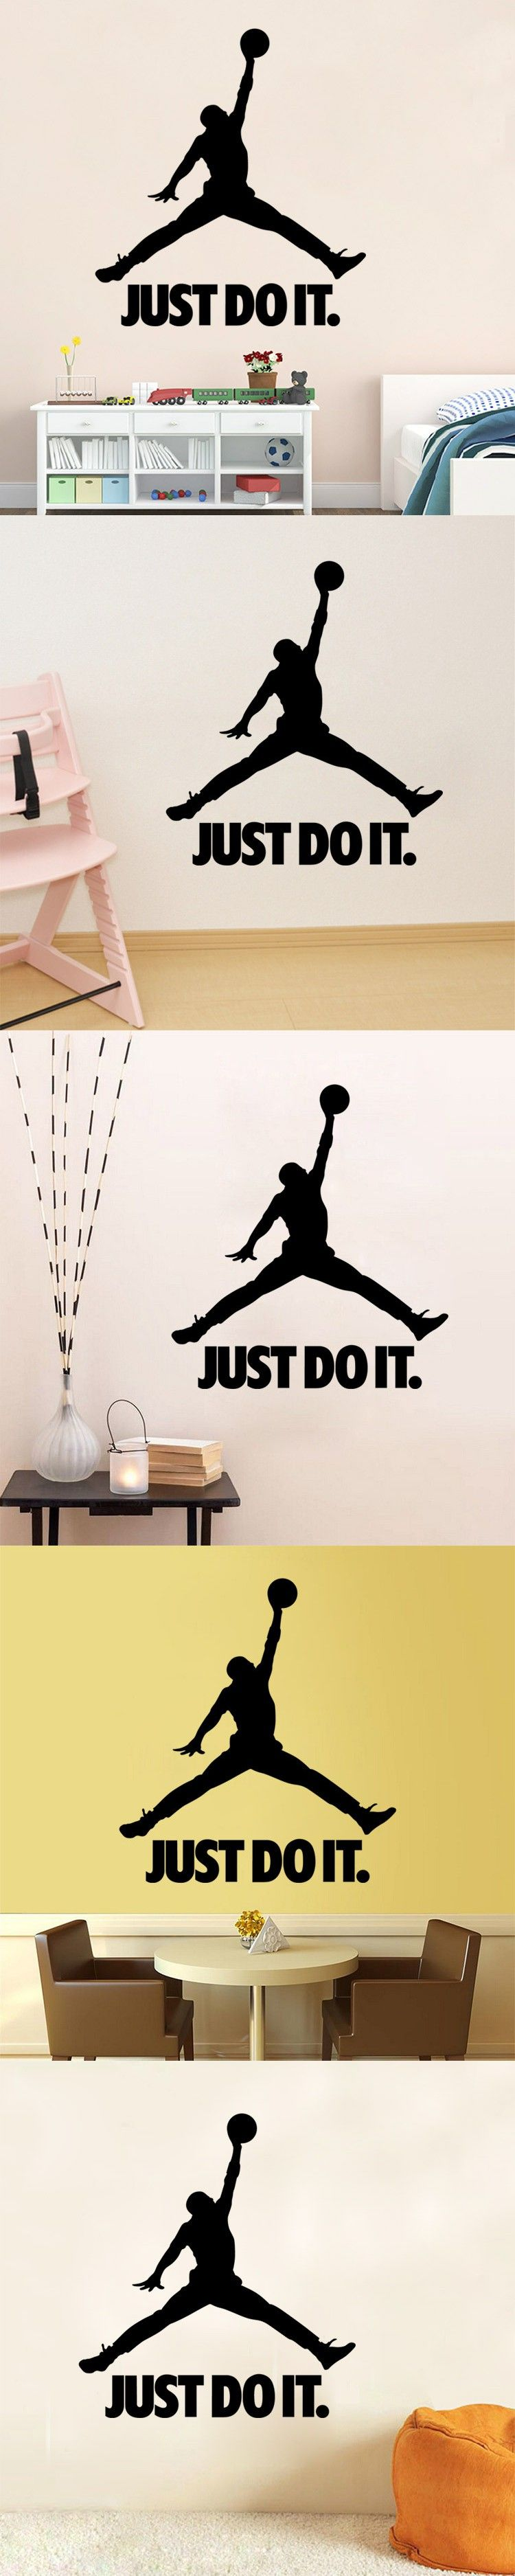 Basketball wall decalsnba michael jordan decalsports boys wall 9334 michael jordan basketball player wall stickers for kids room diy home decorations just do it wall decals all star wall a1 amipublicfo Choice Image